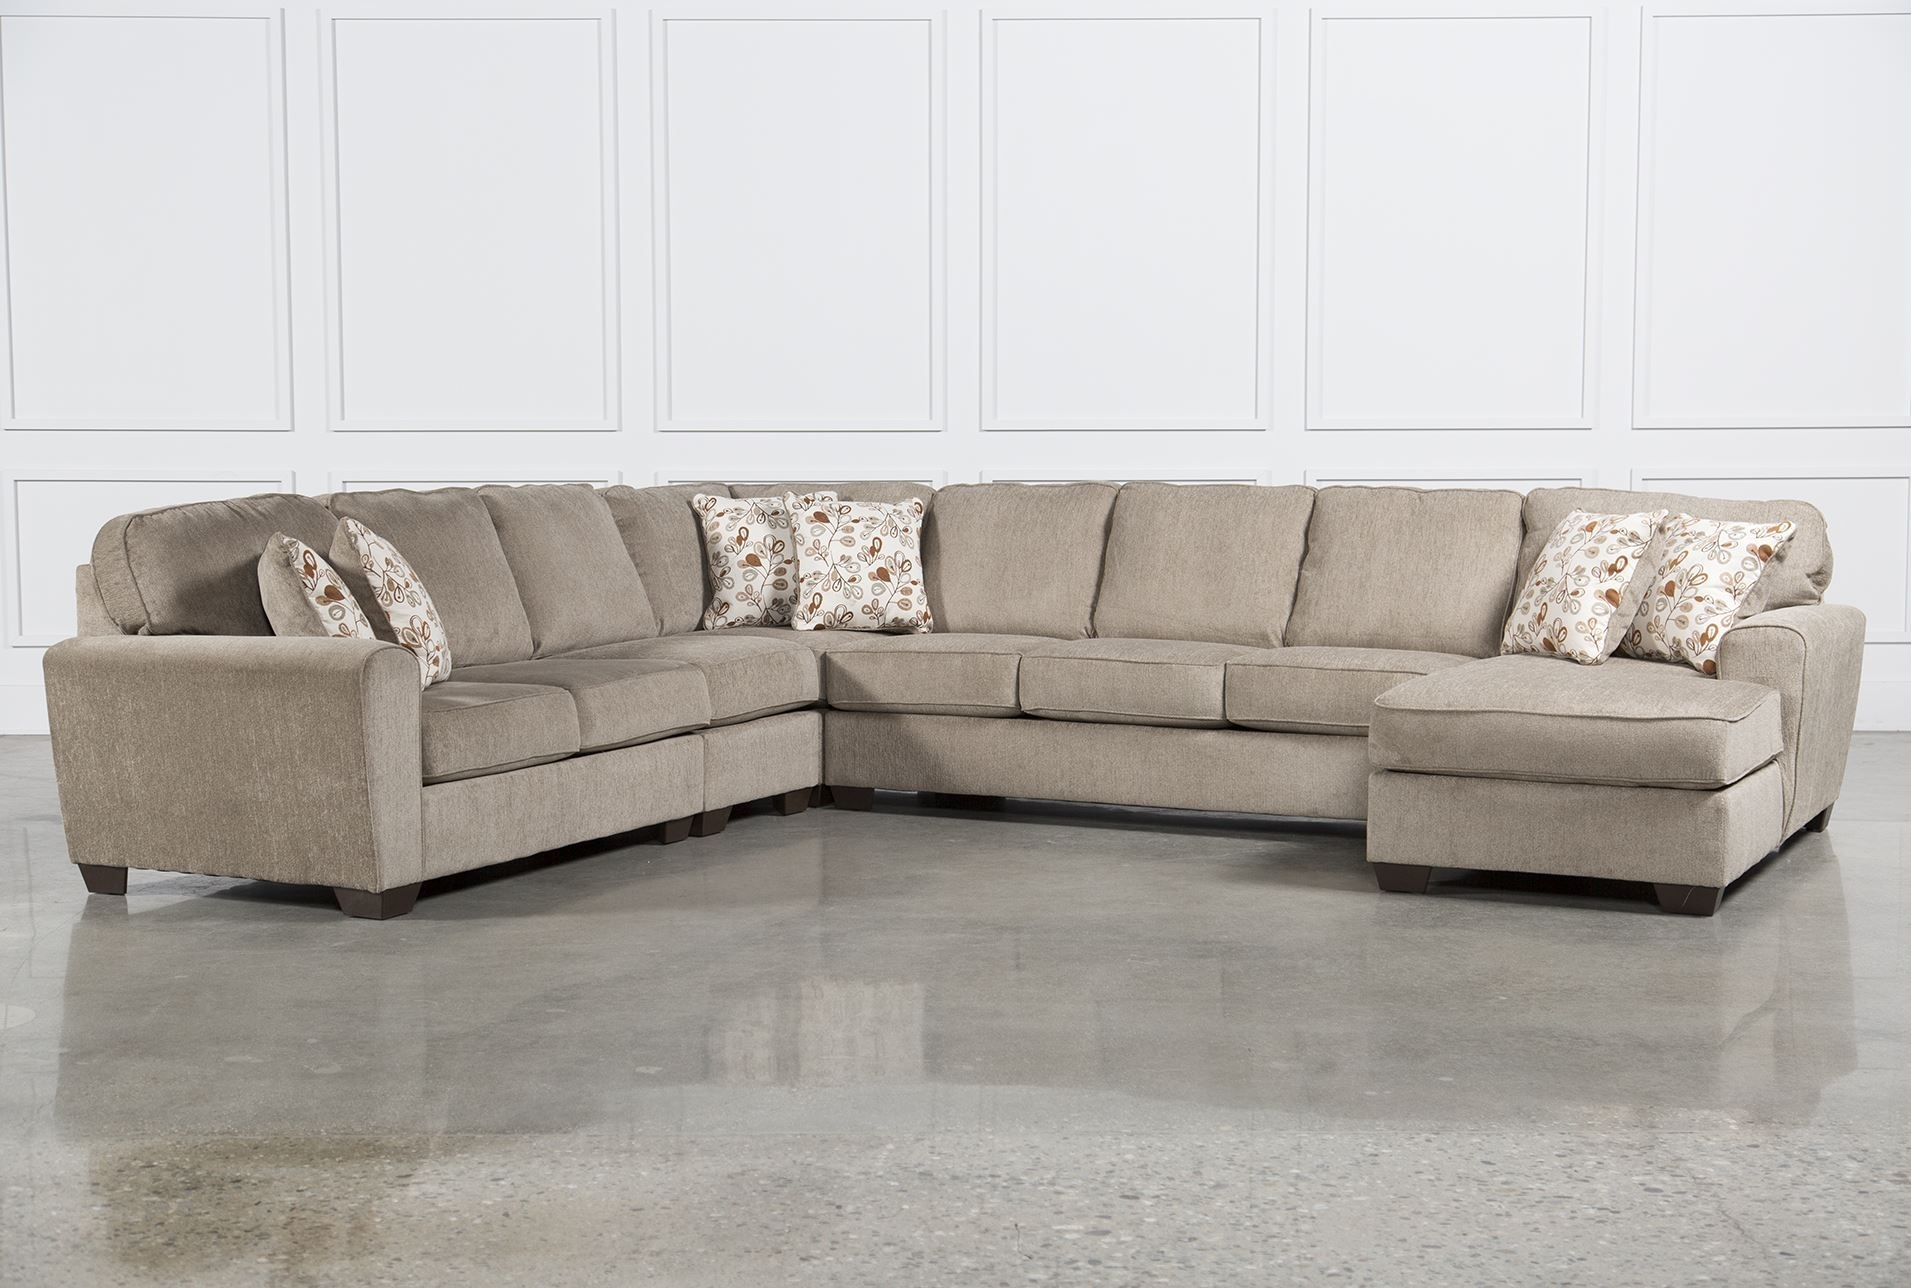 Best Ideas Of Raf Chaise In Patola Park 5 Piece Sectional W Raf intended for Aspen 2 Piece Sectionals With Laf Chaise (Image 10 of 30)